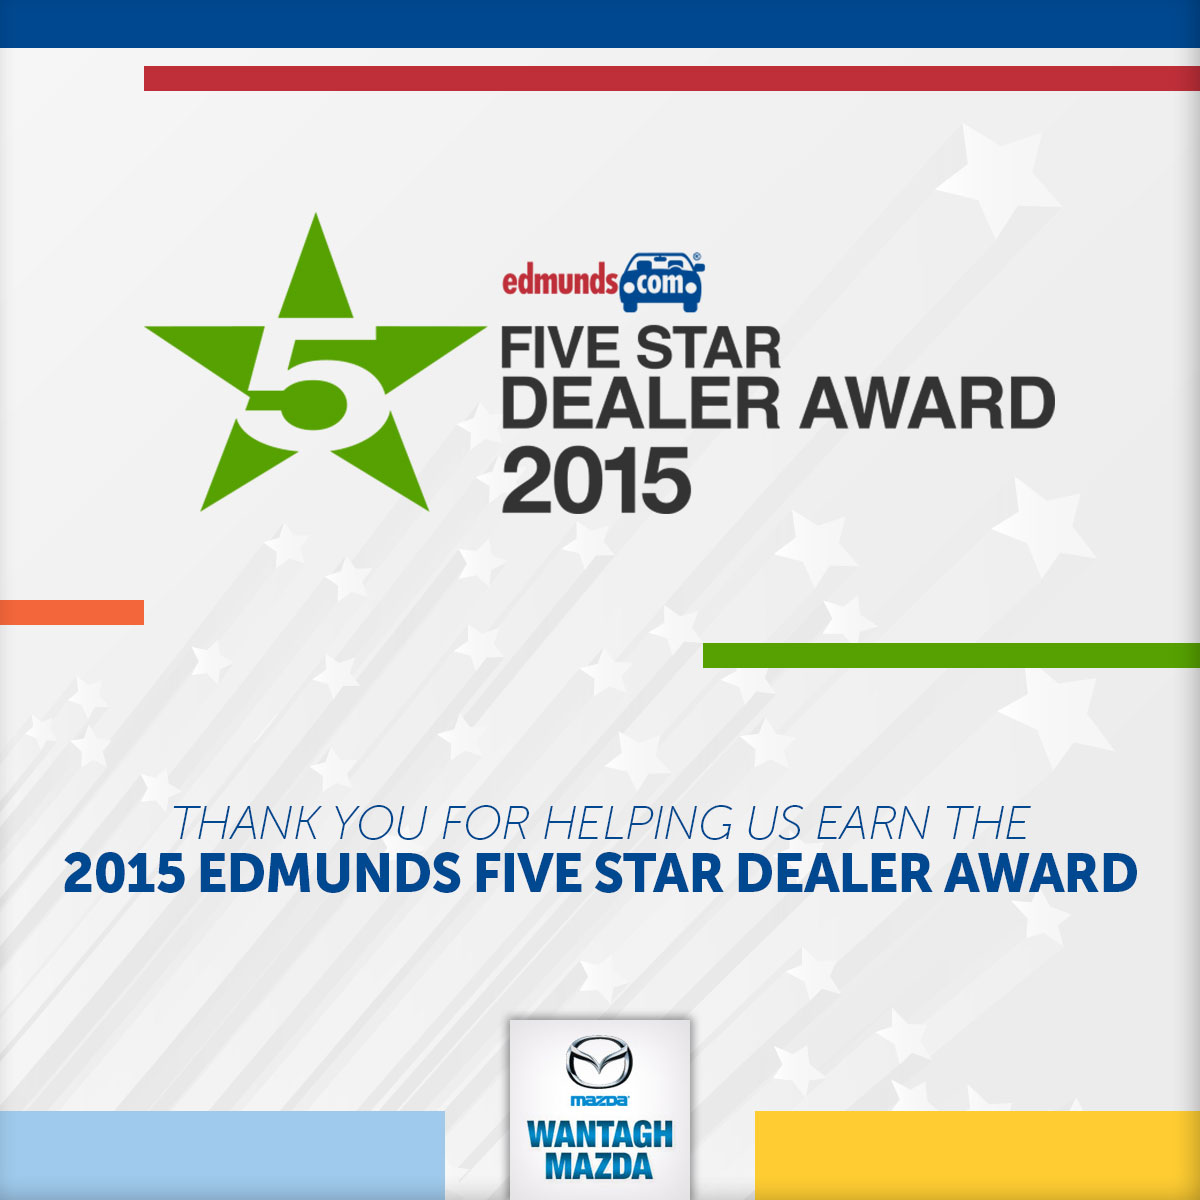 2015 Edmunds Five Star Dealer Award